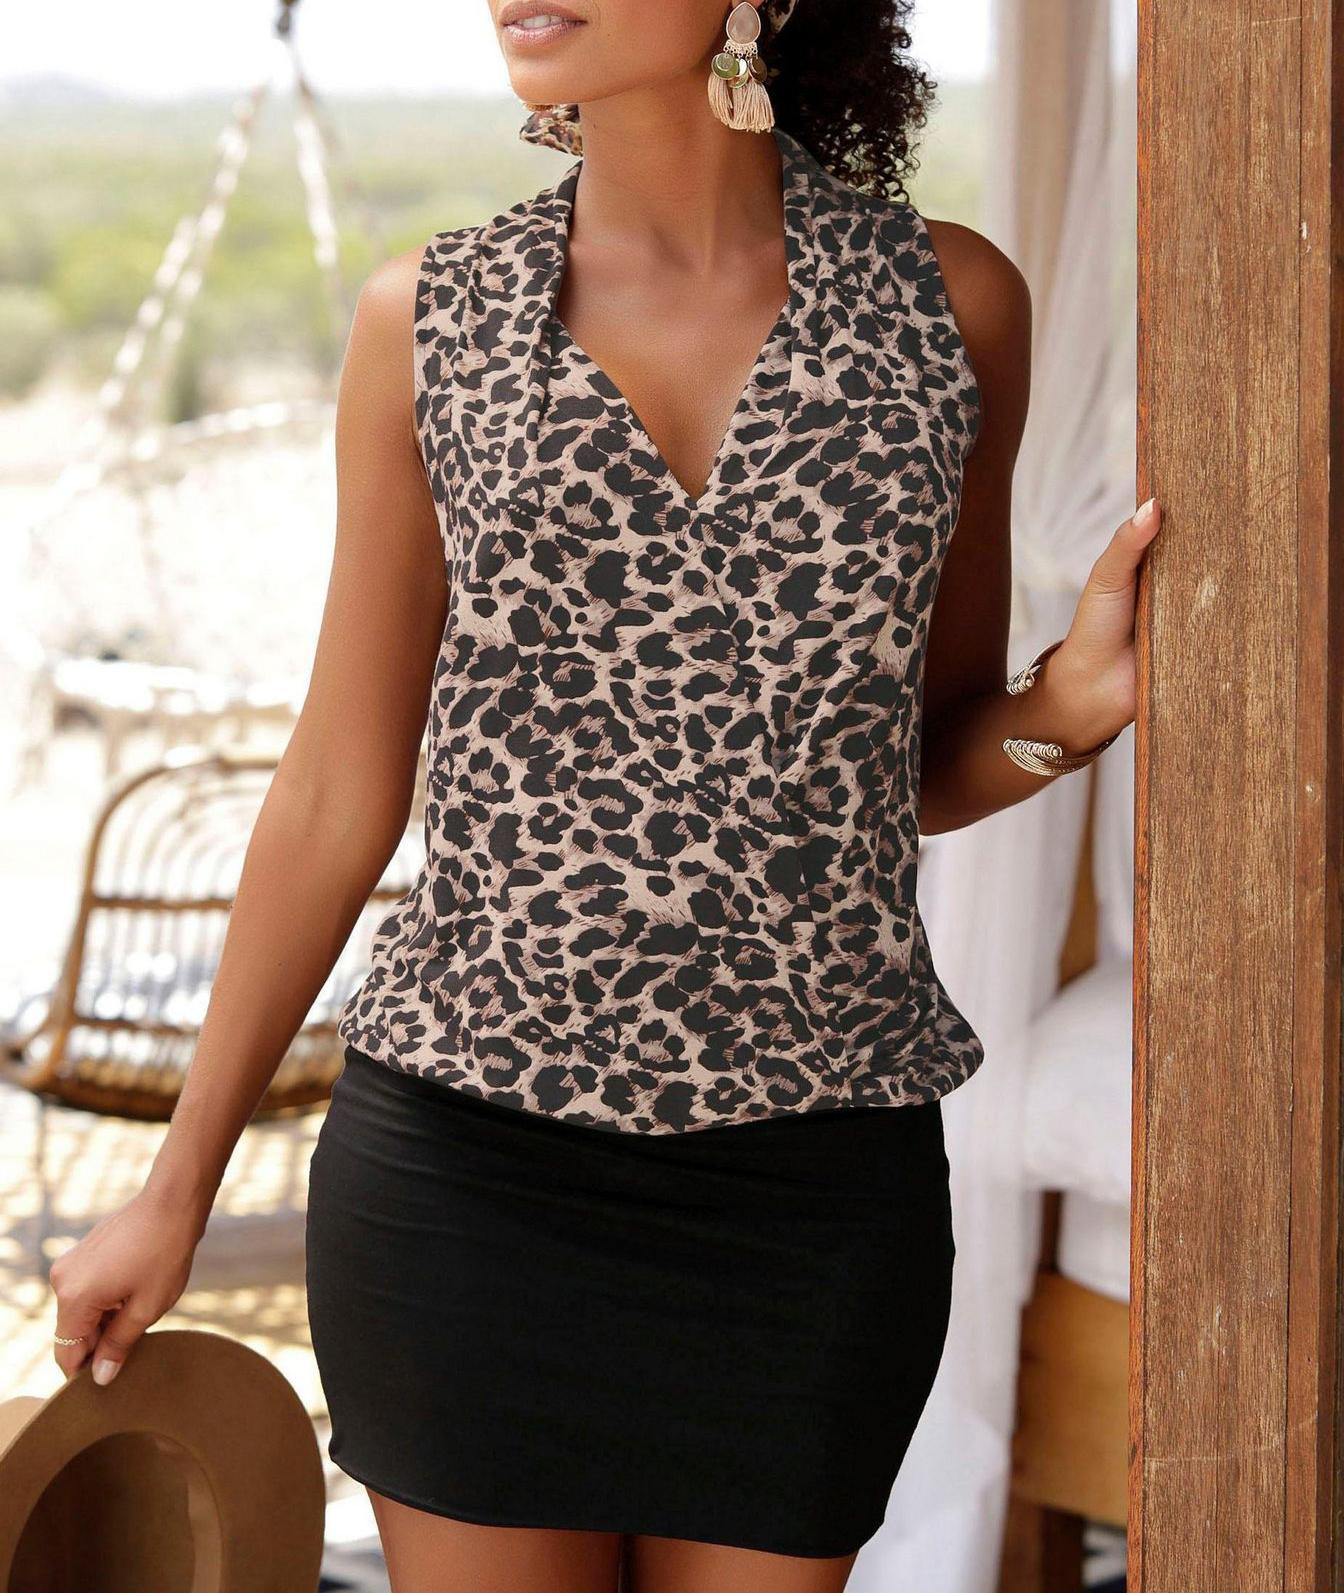 Fashion <font><b>Black</b></font> Patchwork Leopard Beach Style <font><b>Dresses</b></font> Women <font><b>Summer</b></font> <font><b>2019</b></font> <font><b>Sexy</b></font> Deep V-neck Tank <font><b>Sleeveless</b></font> Sheath Mini <font><b>Bodycon</b></font> <font><b>Dress</b></font> image